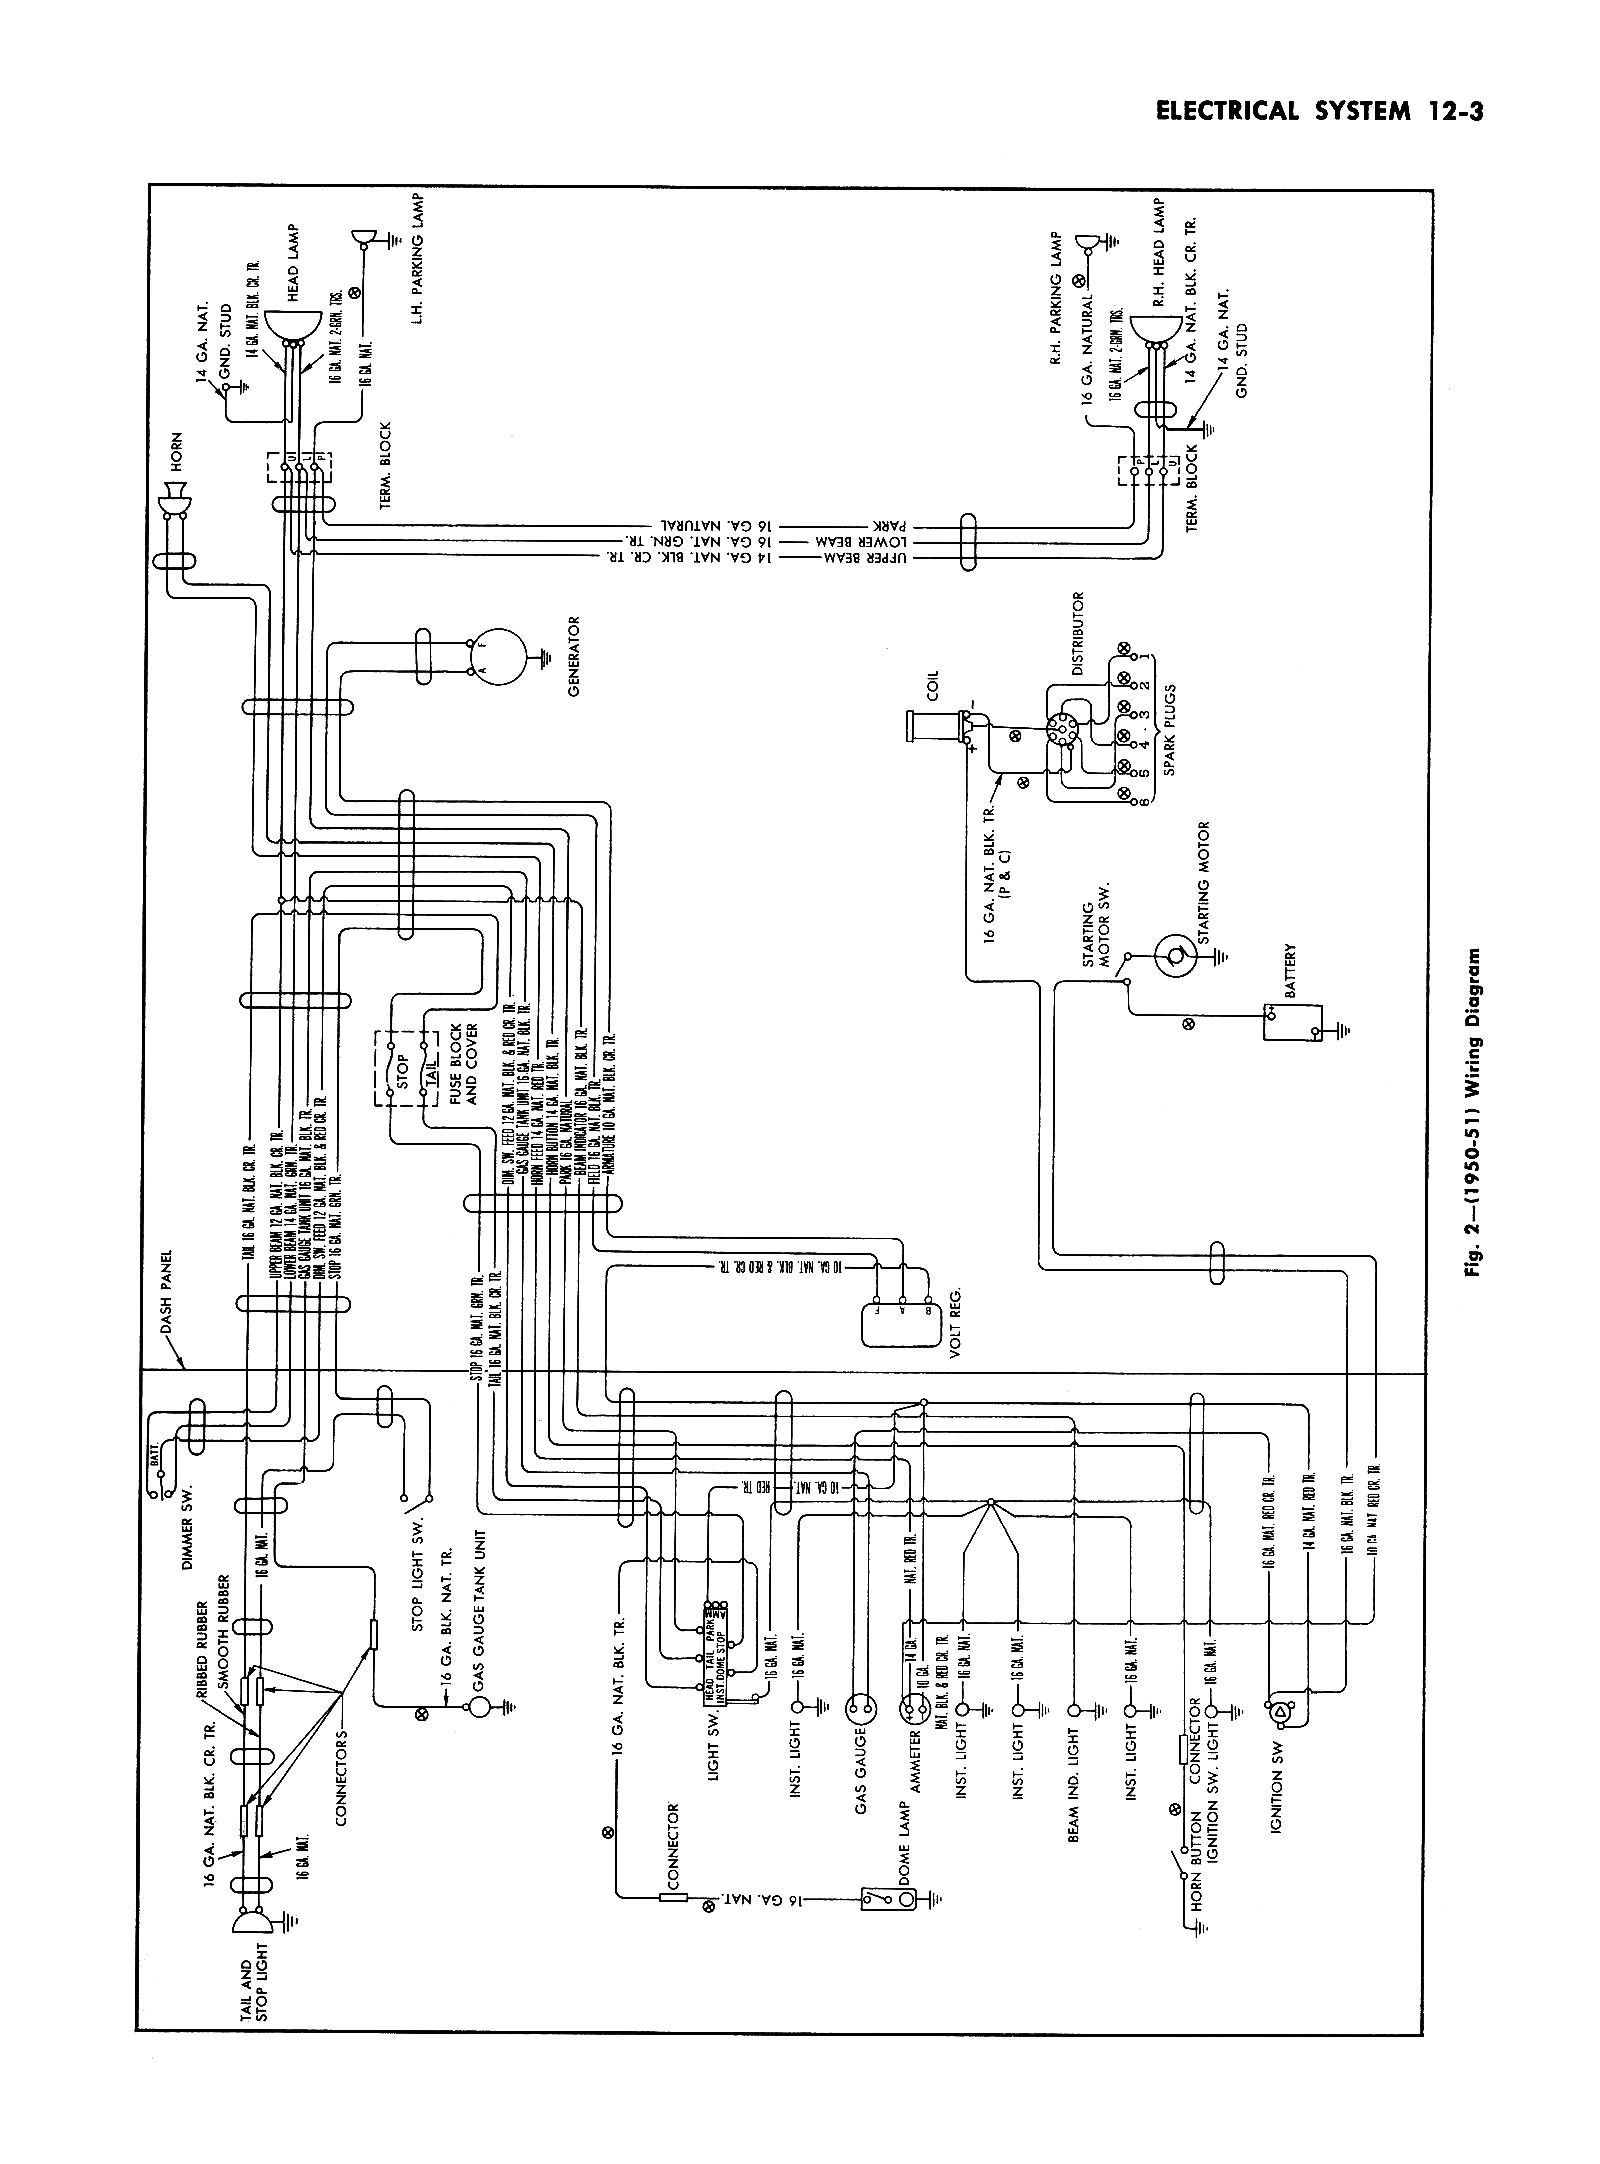 1953 lincoln wiring diagram wiring diagram centre 1953 lincoln wiring diagram [ 1600 x 2164 Pixel ]